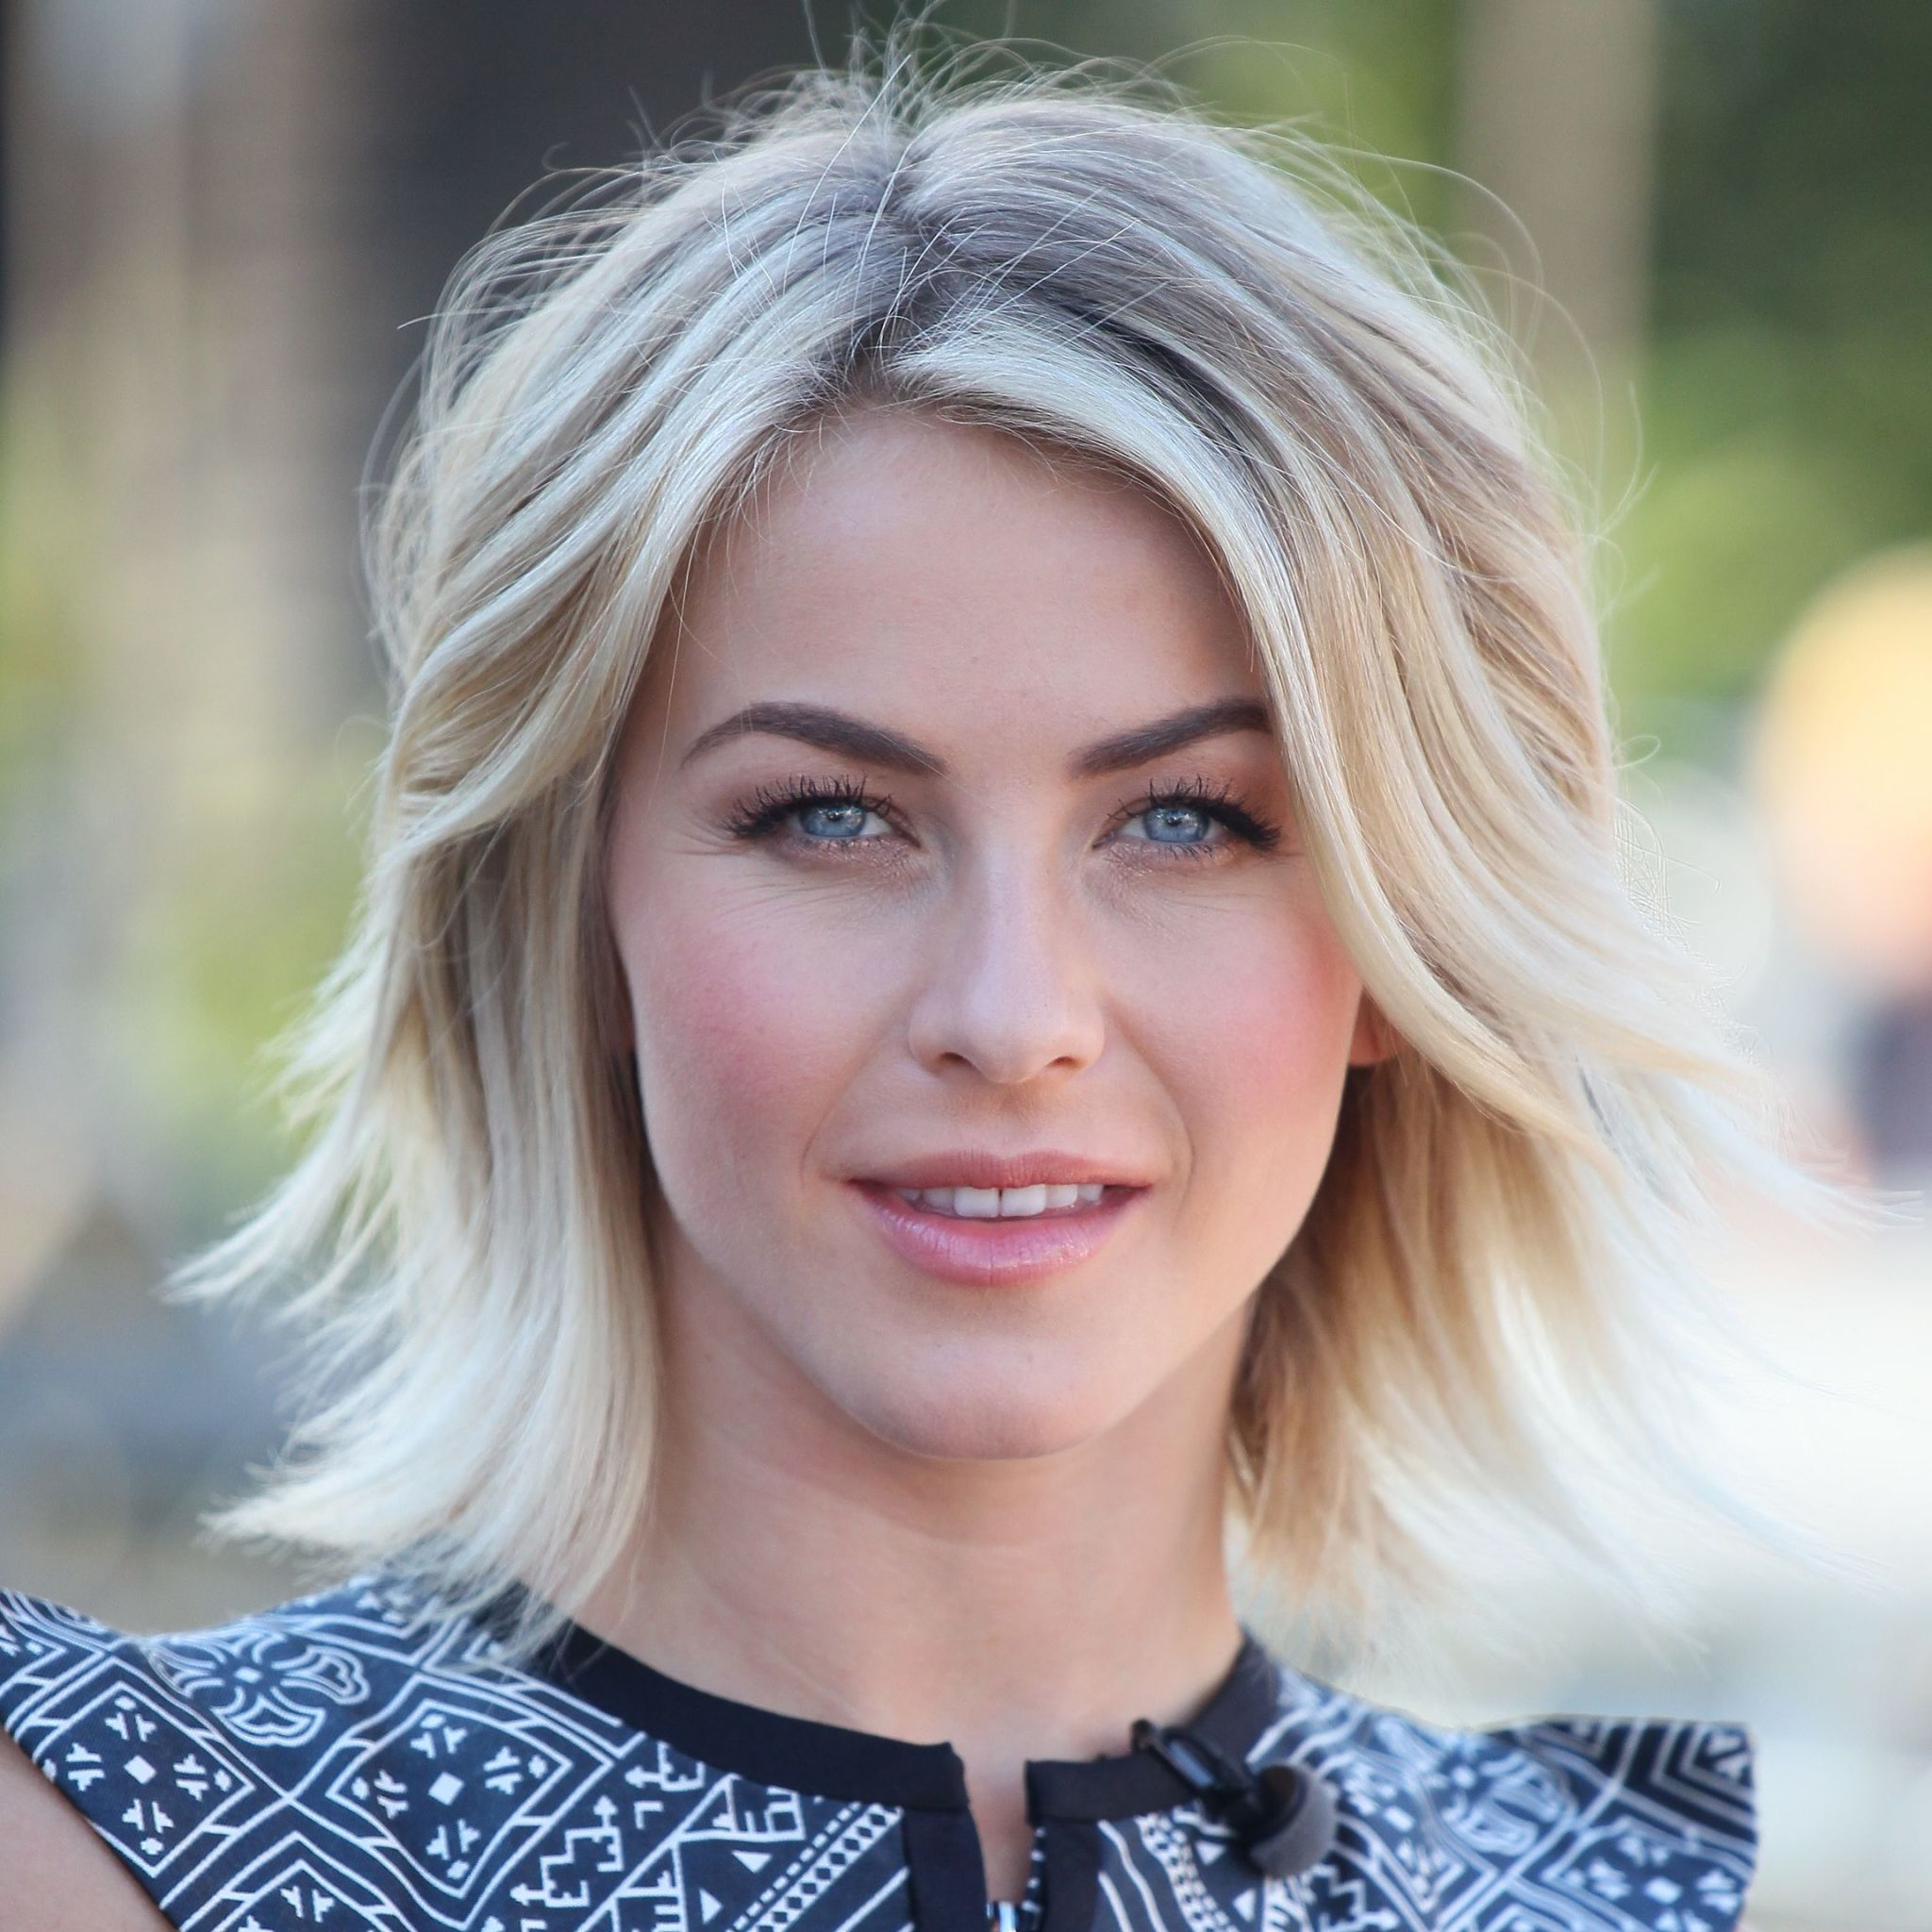 Give Thin Hair A Boost With These Hairstyle Ideas That Help You Fake Fullness Hairstyles For Thin Hair Medium Thin Hair Medium Length Hair Styles